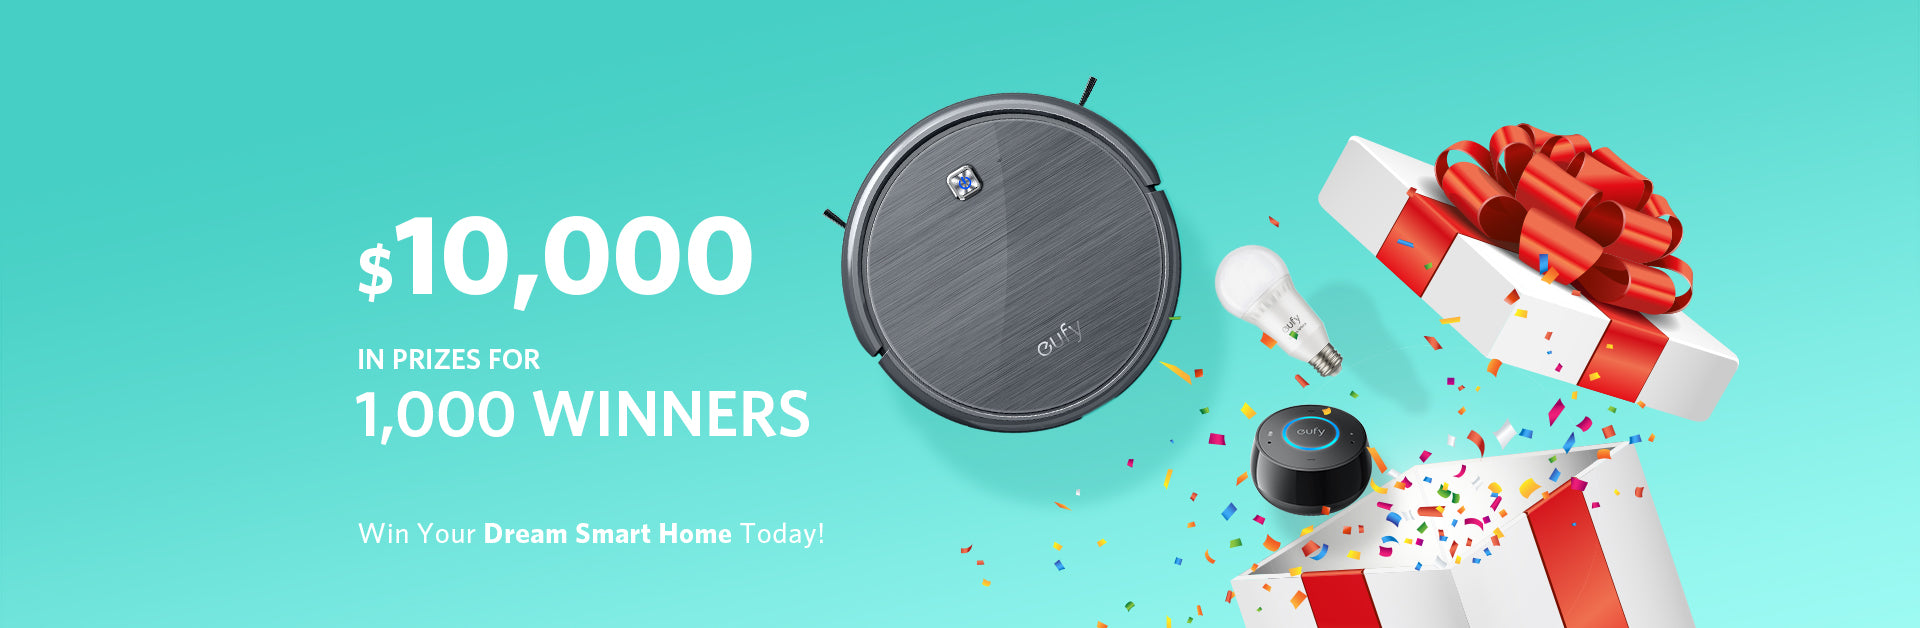 Win Your Dream Smart Home Today!